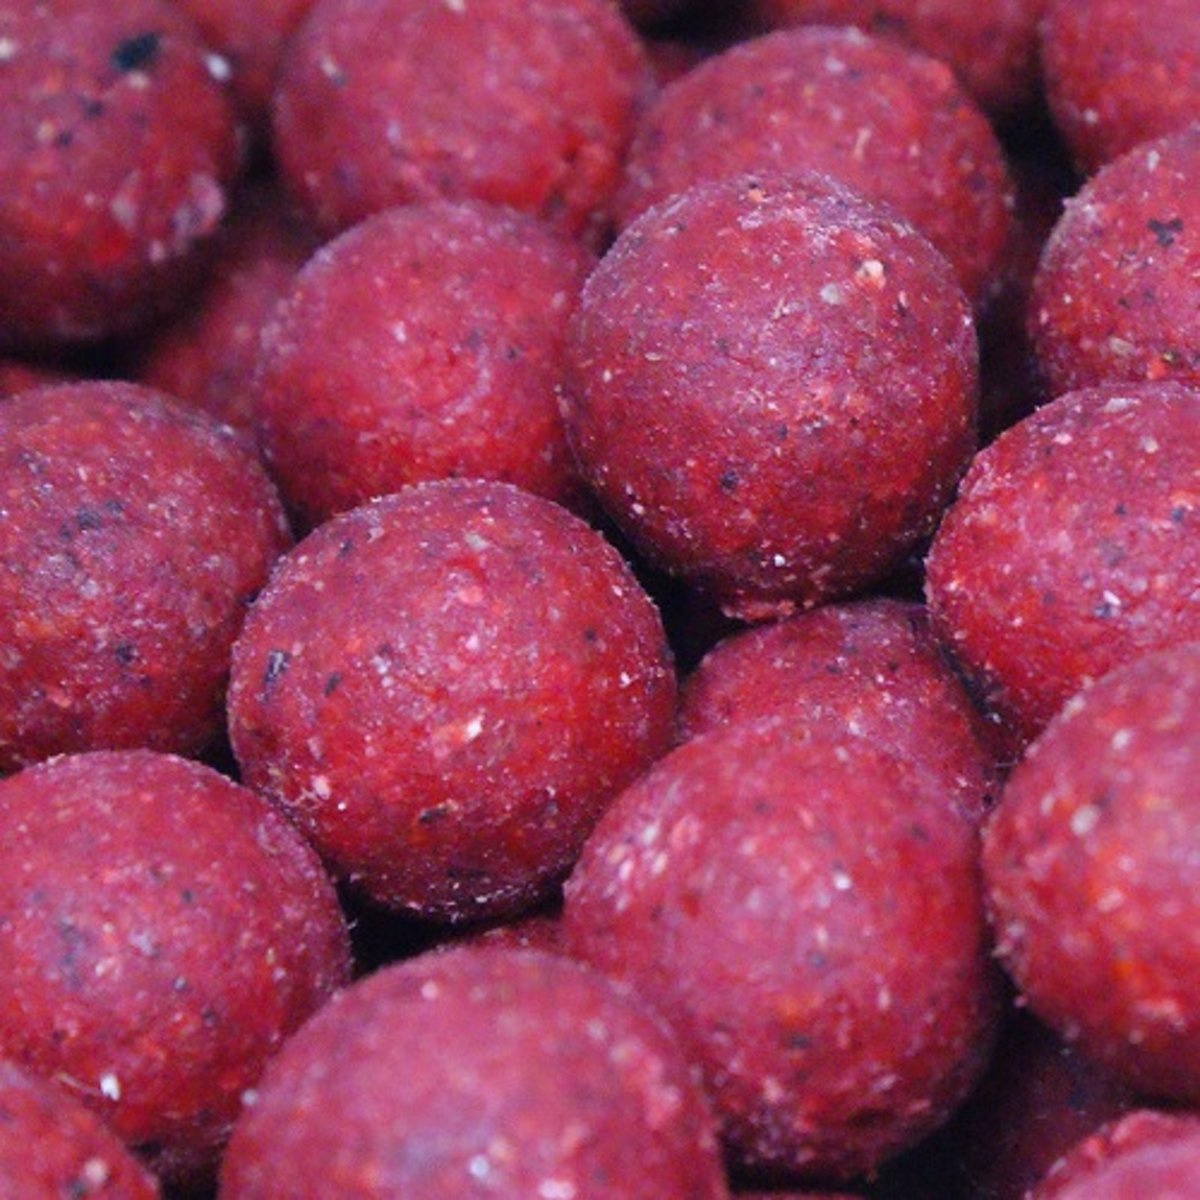 Strawberry 20mm - Boilies - 5KG